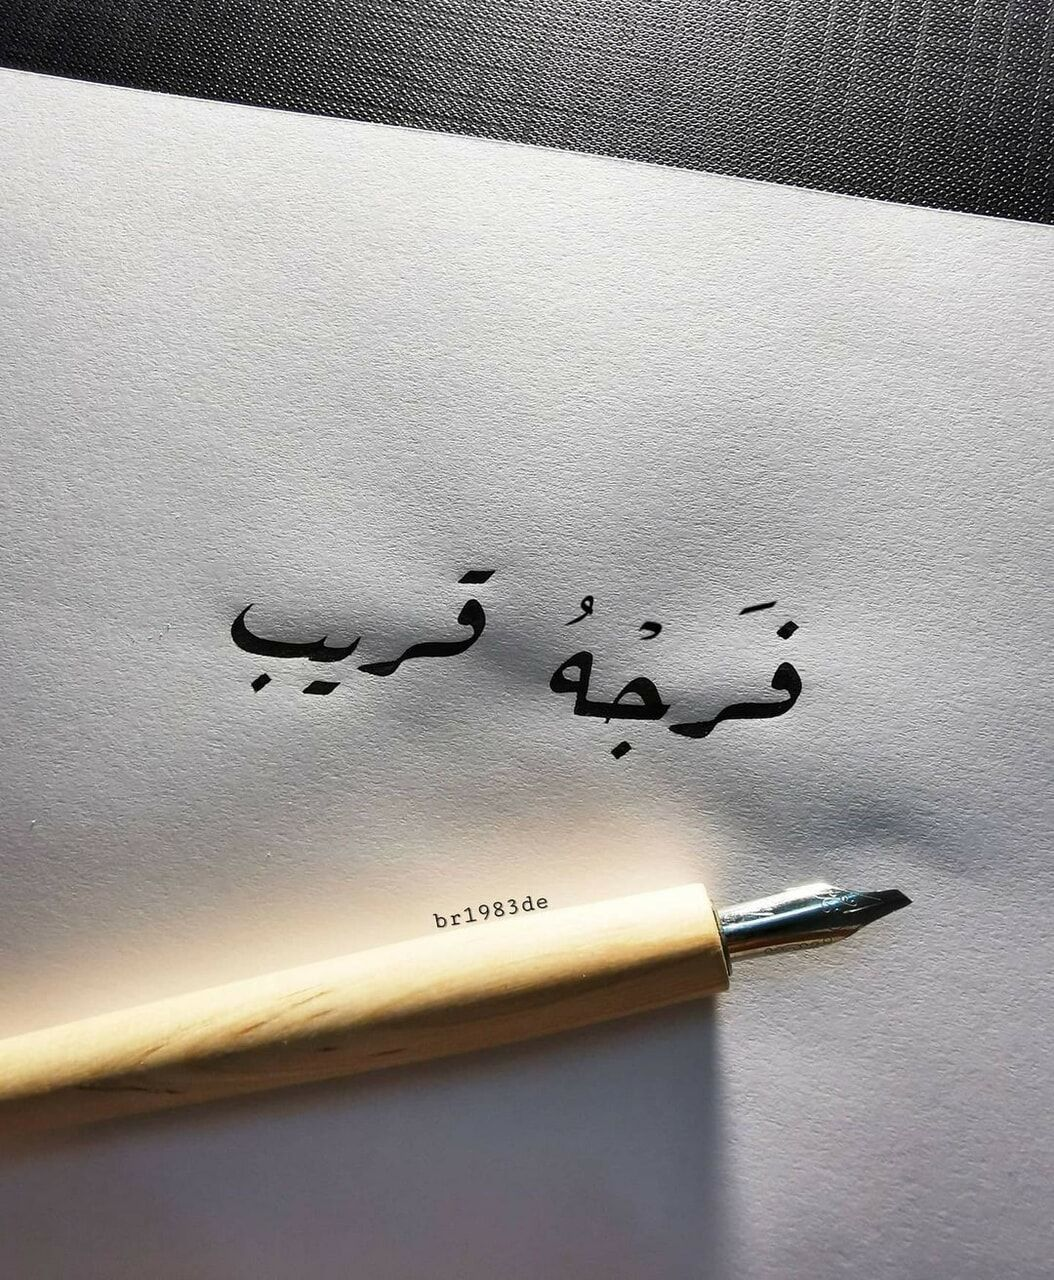 Uploaded By Mohammed A Alsattar Find Images And Videos About كتابات كتابة كتب كتاب مخطوطات مخطوط خط خط In 2021 Islamic Love Quotes Friends Quotes Best Friend Quotes